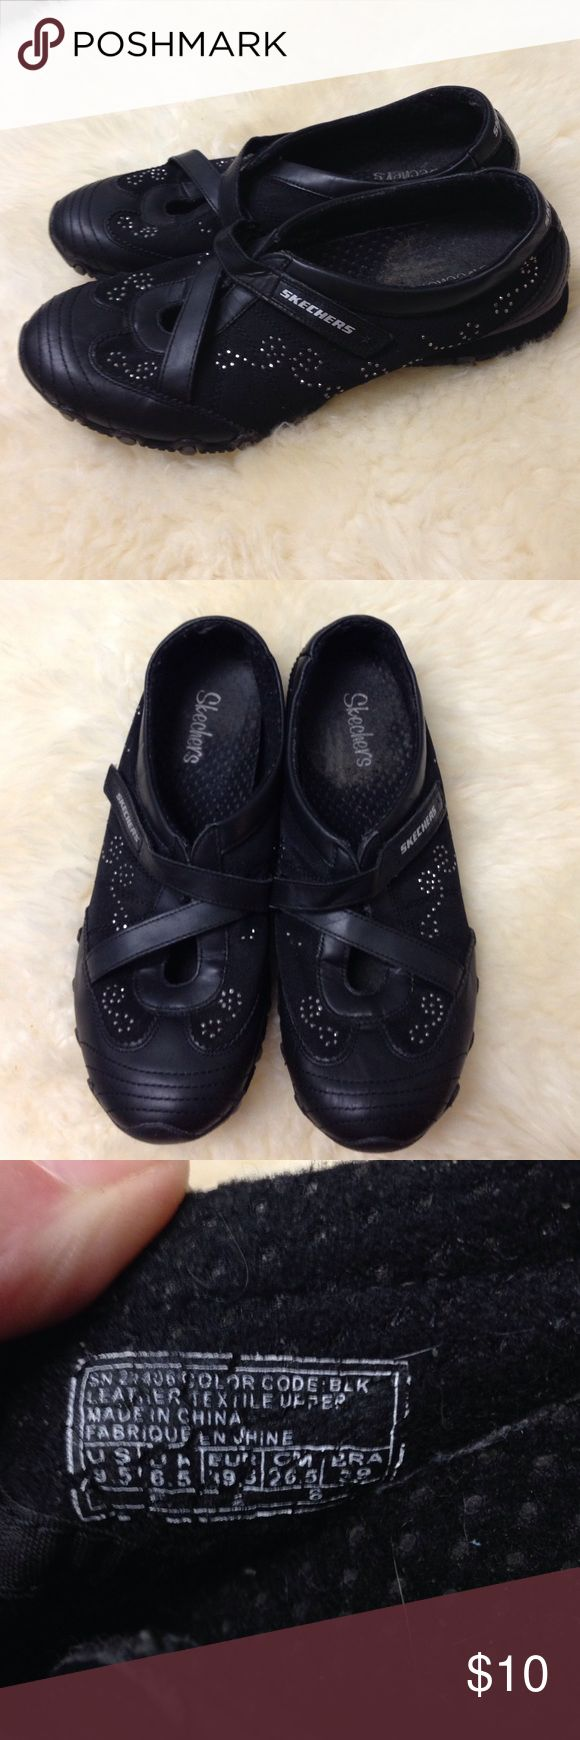 Skechers Bikers Blissful Style Shoes The shoes have been gently worn. They are still in great shape and are in clean condition. Skechers Shoes Sneakers